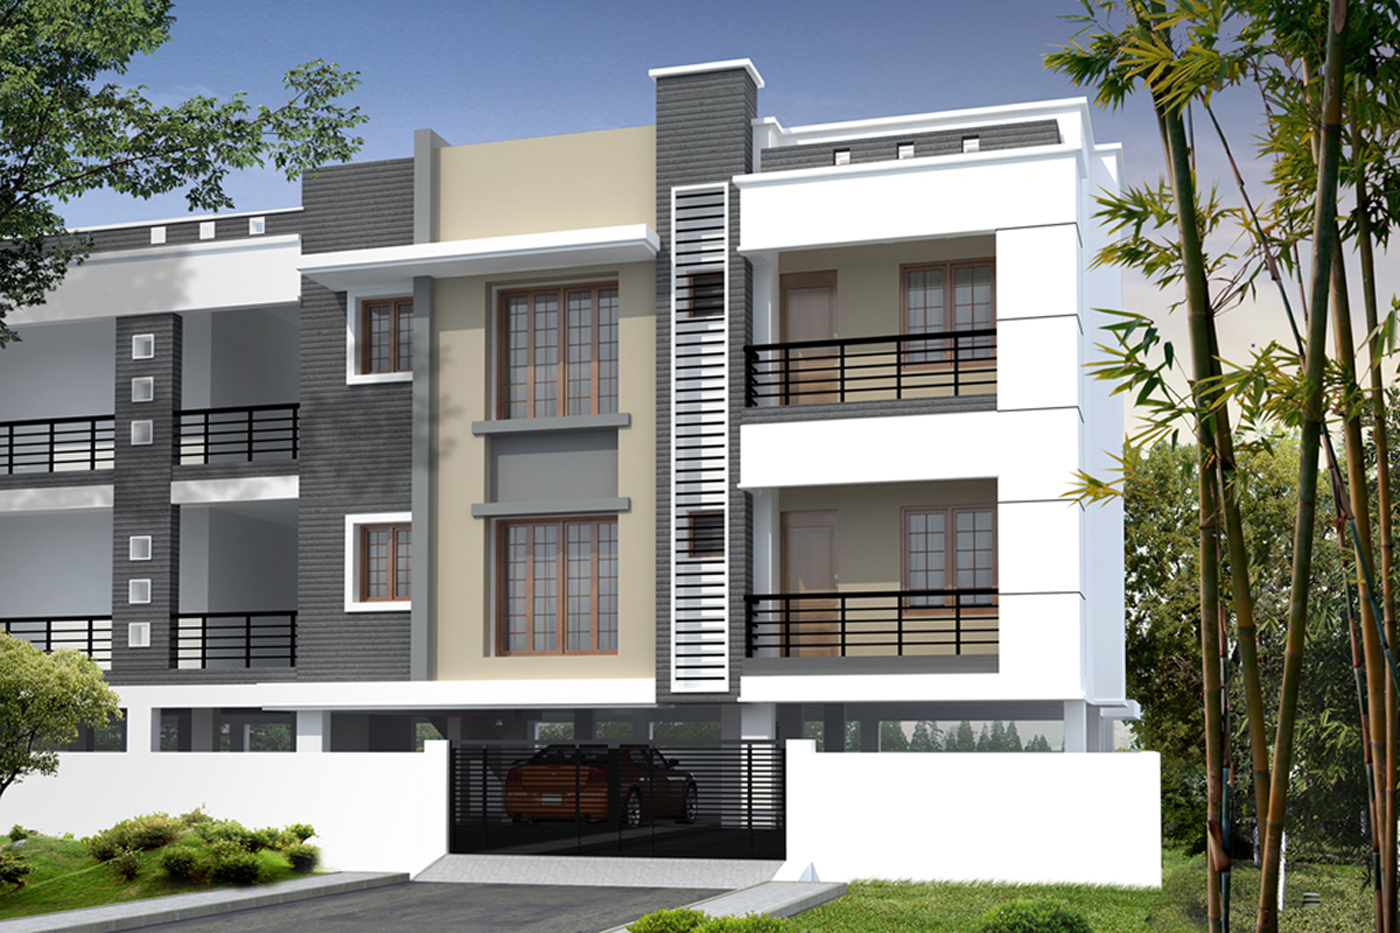 Apartments in Chennai - Apartment for Sale in Chennai - Buy/Sell ...